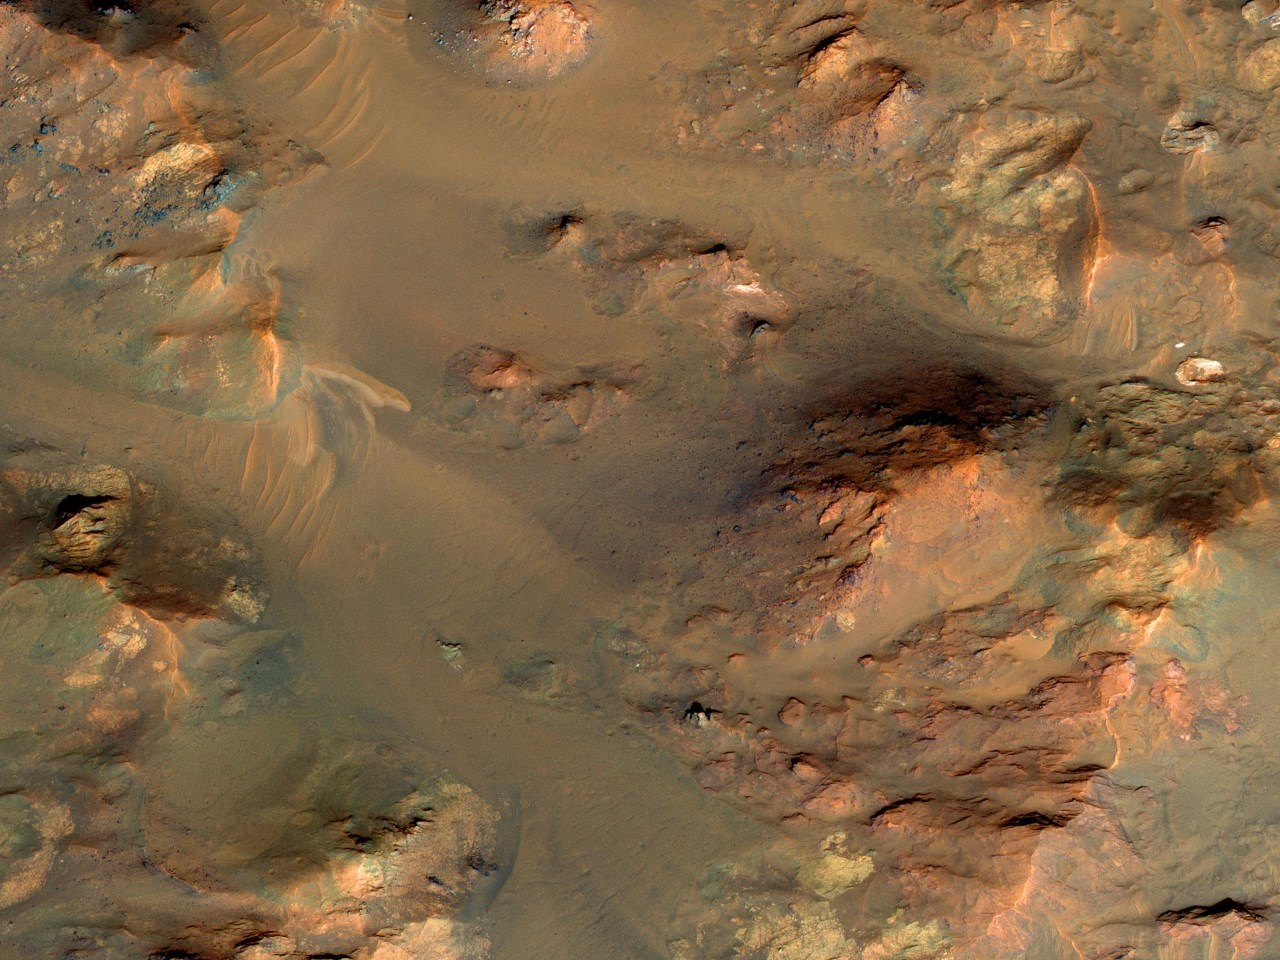 An Oblique View of Uplifted Rocks